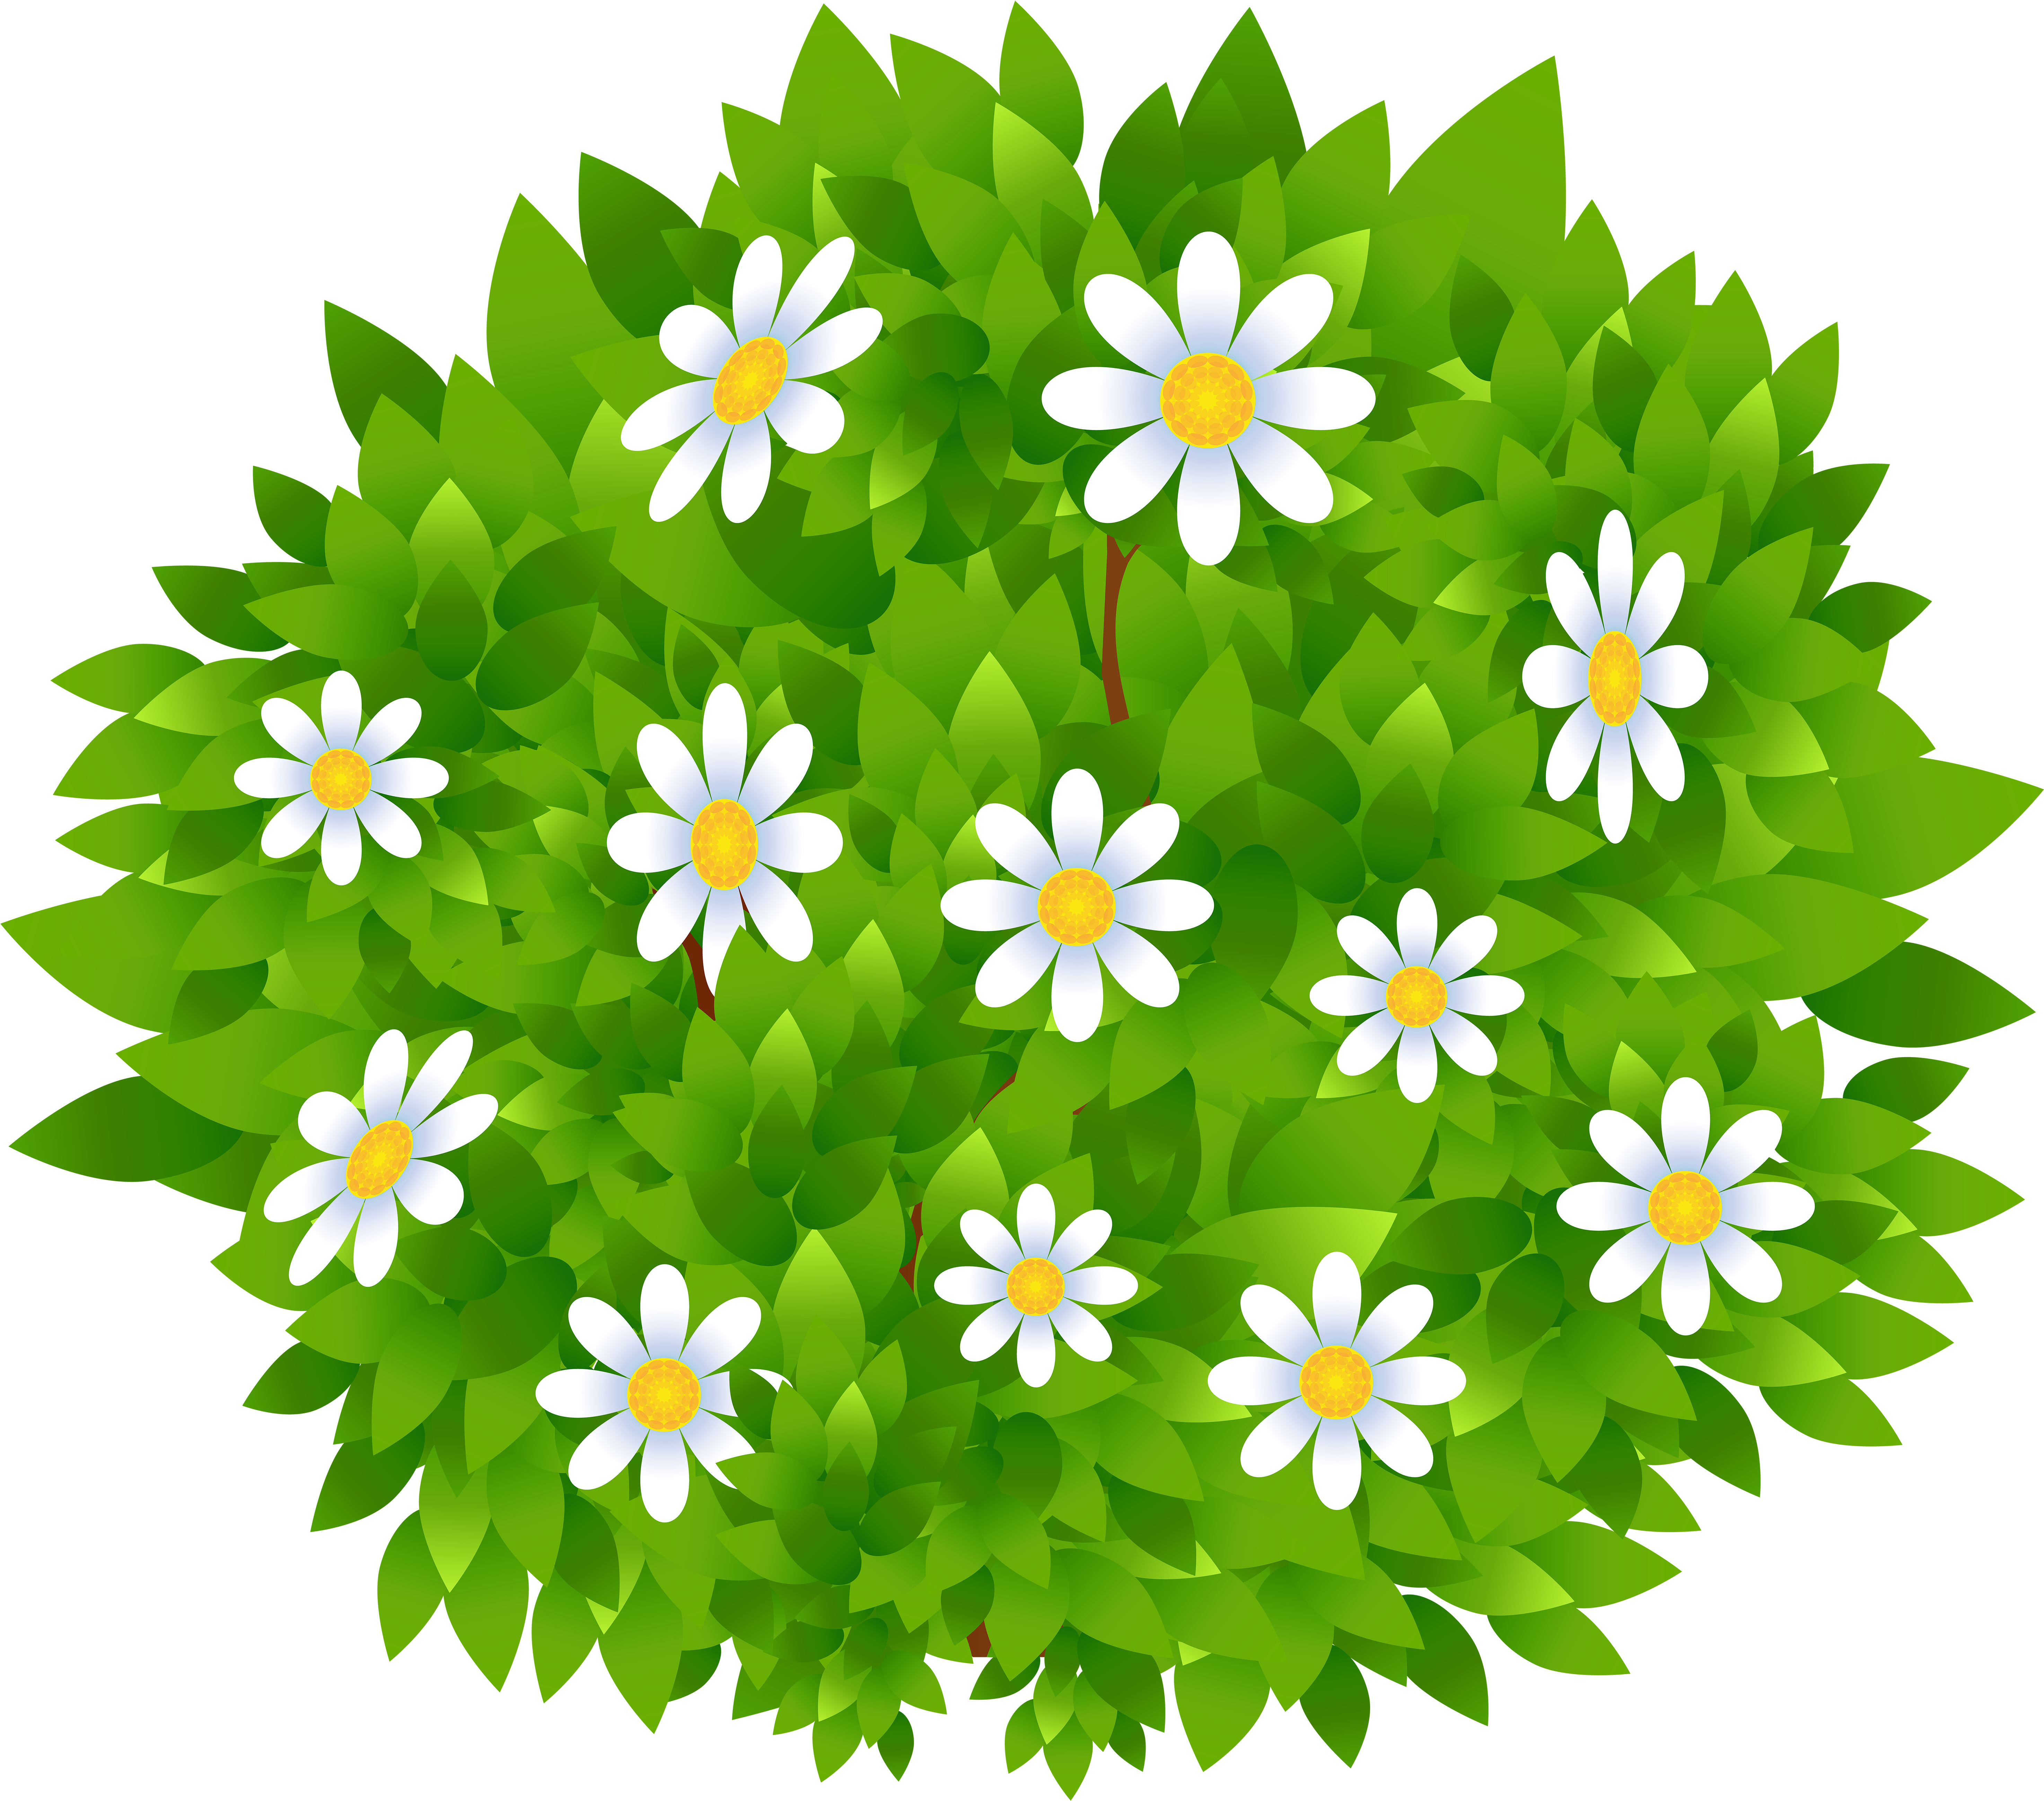 Bushes clipart file, Bushes file Transparent FREE for.